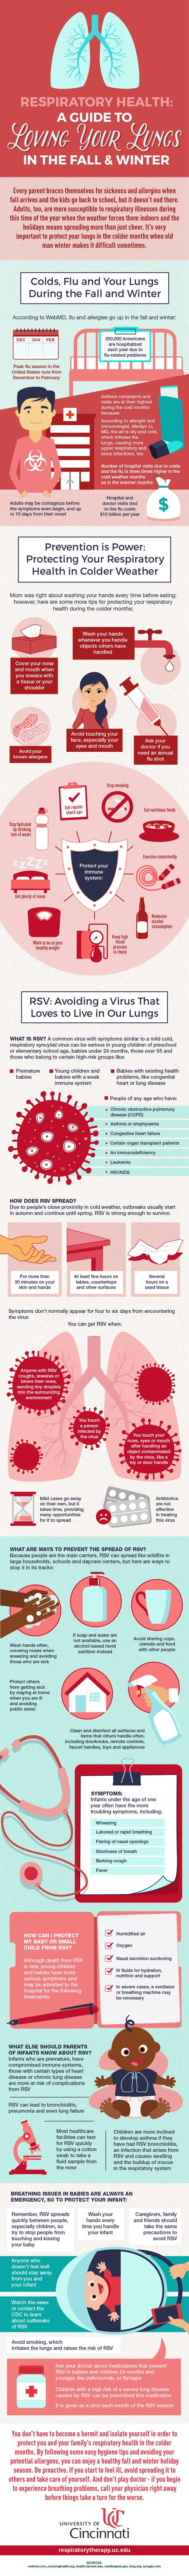 An infographic about respiratory health during fall and winter by the University of Cincinnati's respiratory therapy program.<br alt=